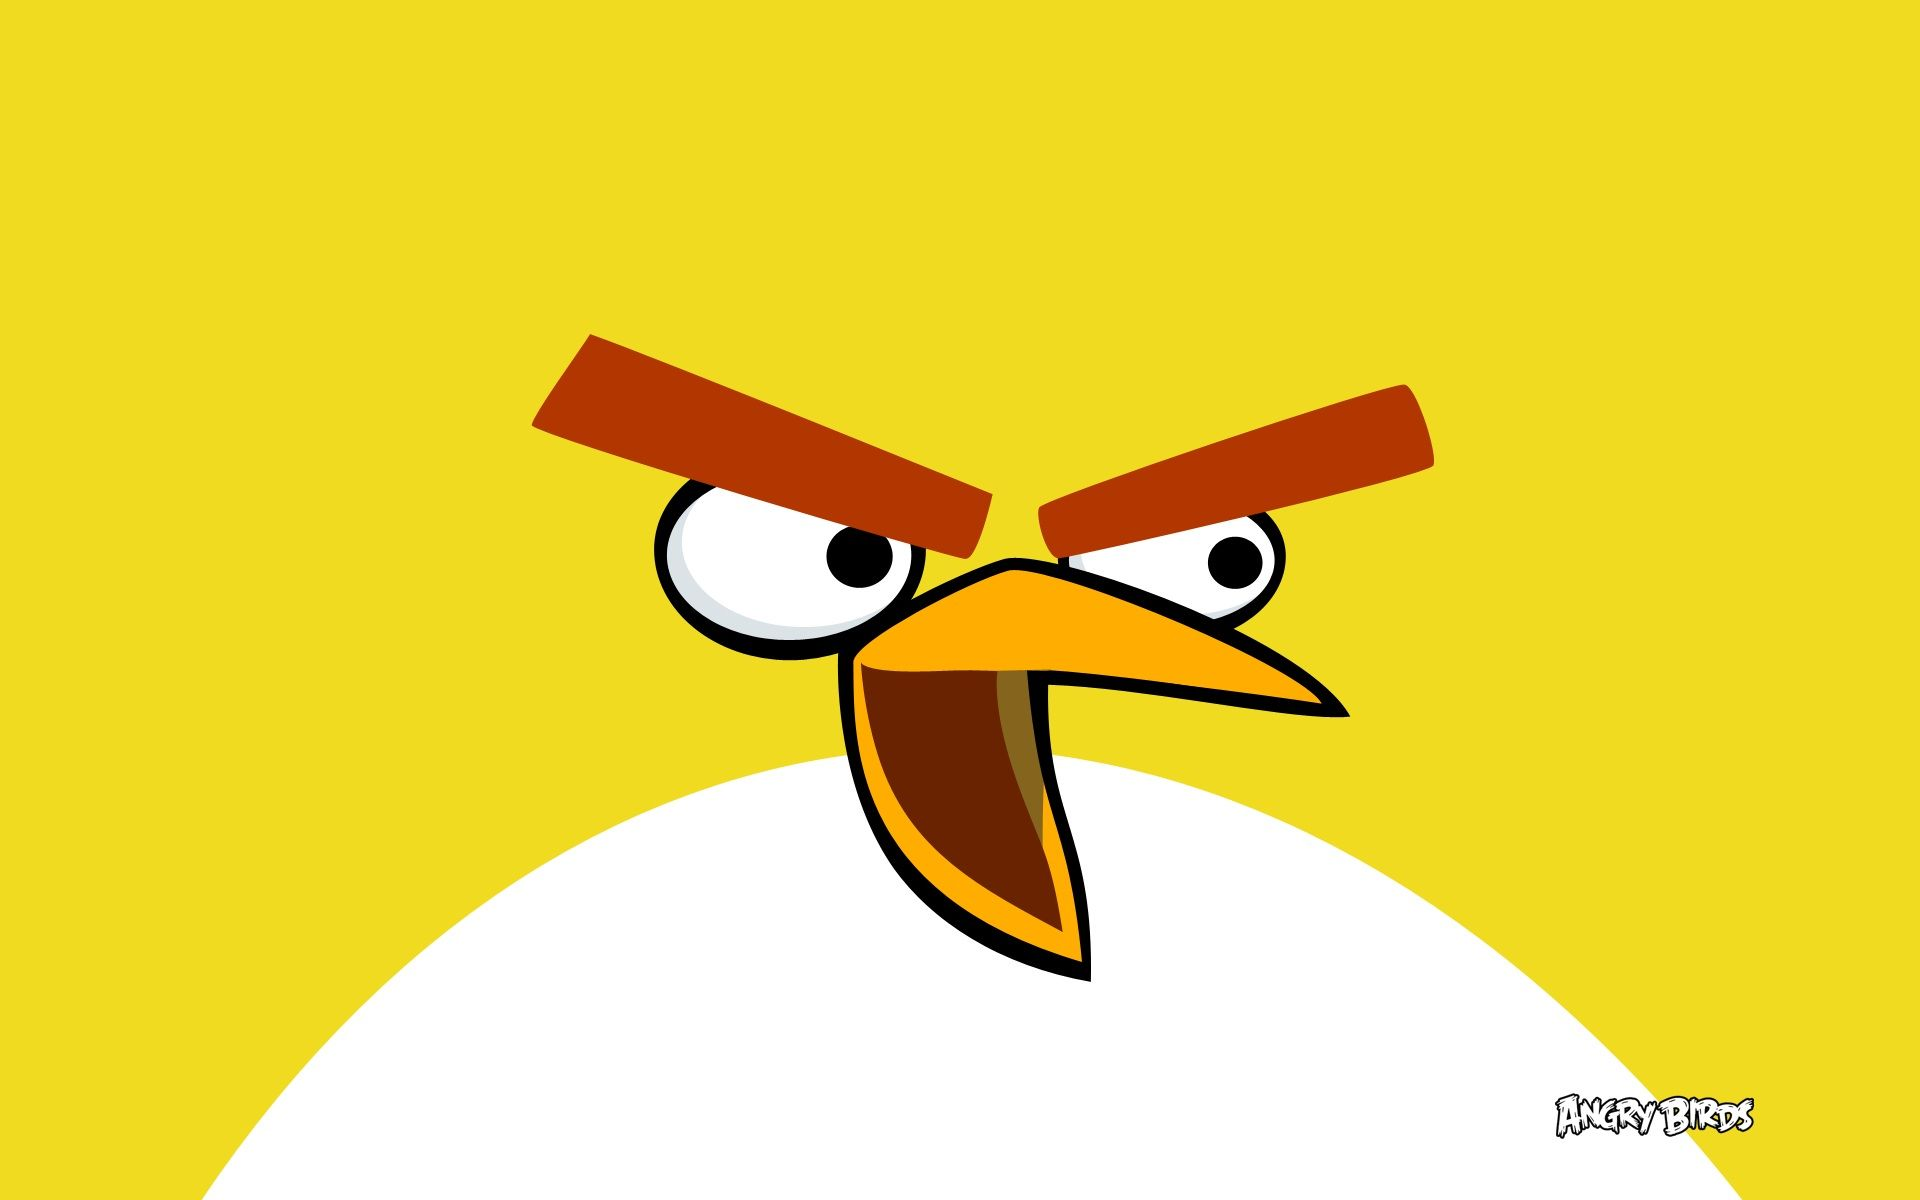 yellow bird in angry birds Wallpapers    #hdwallpapers #yellow #wallpapers #birds #bird